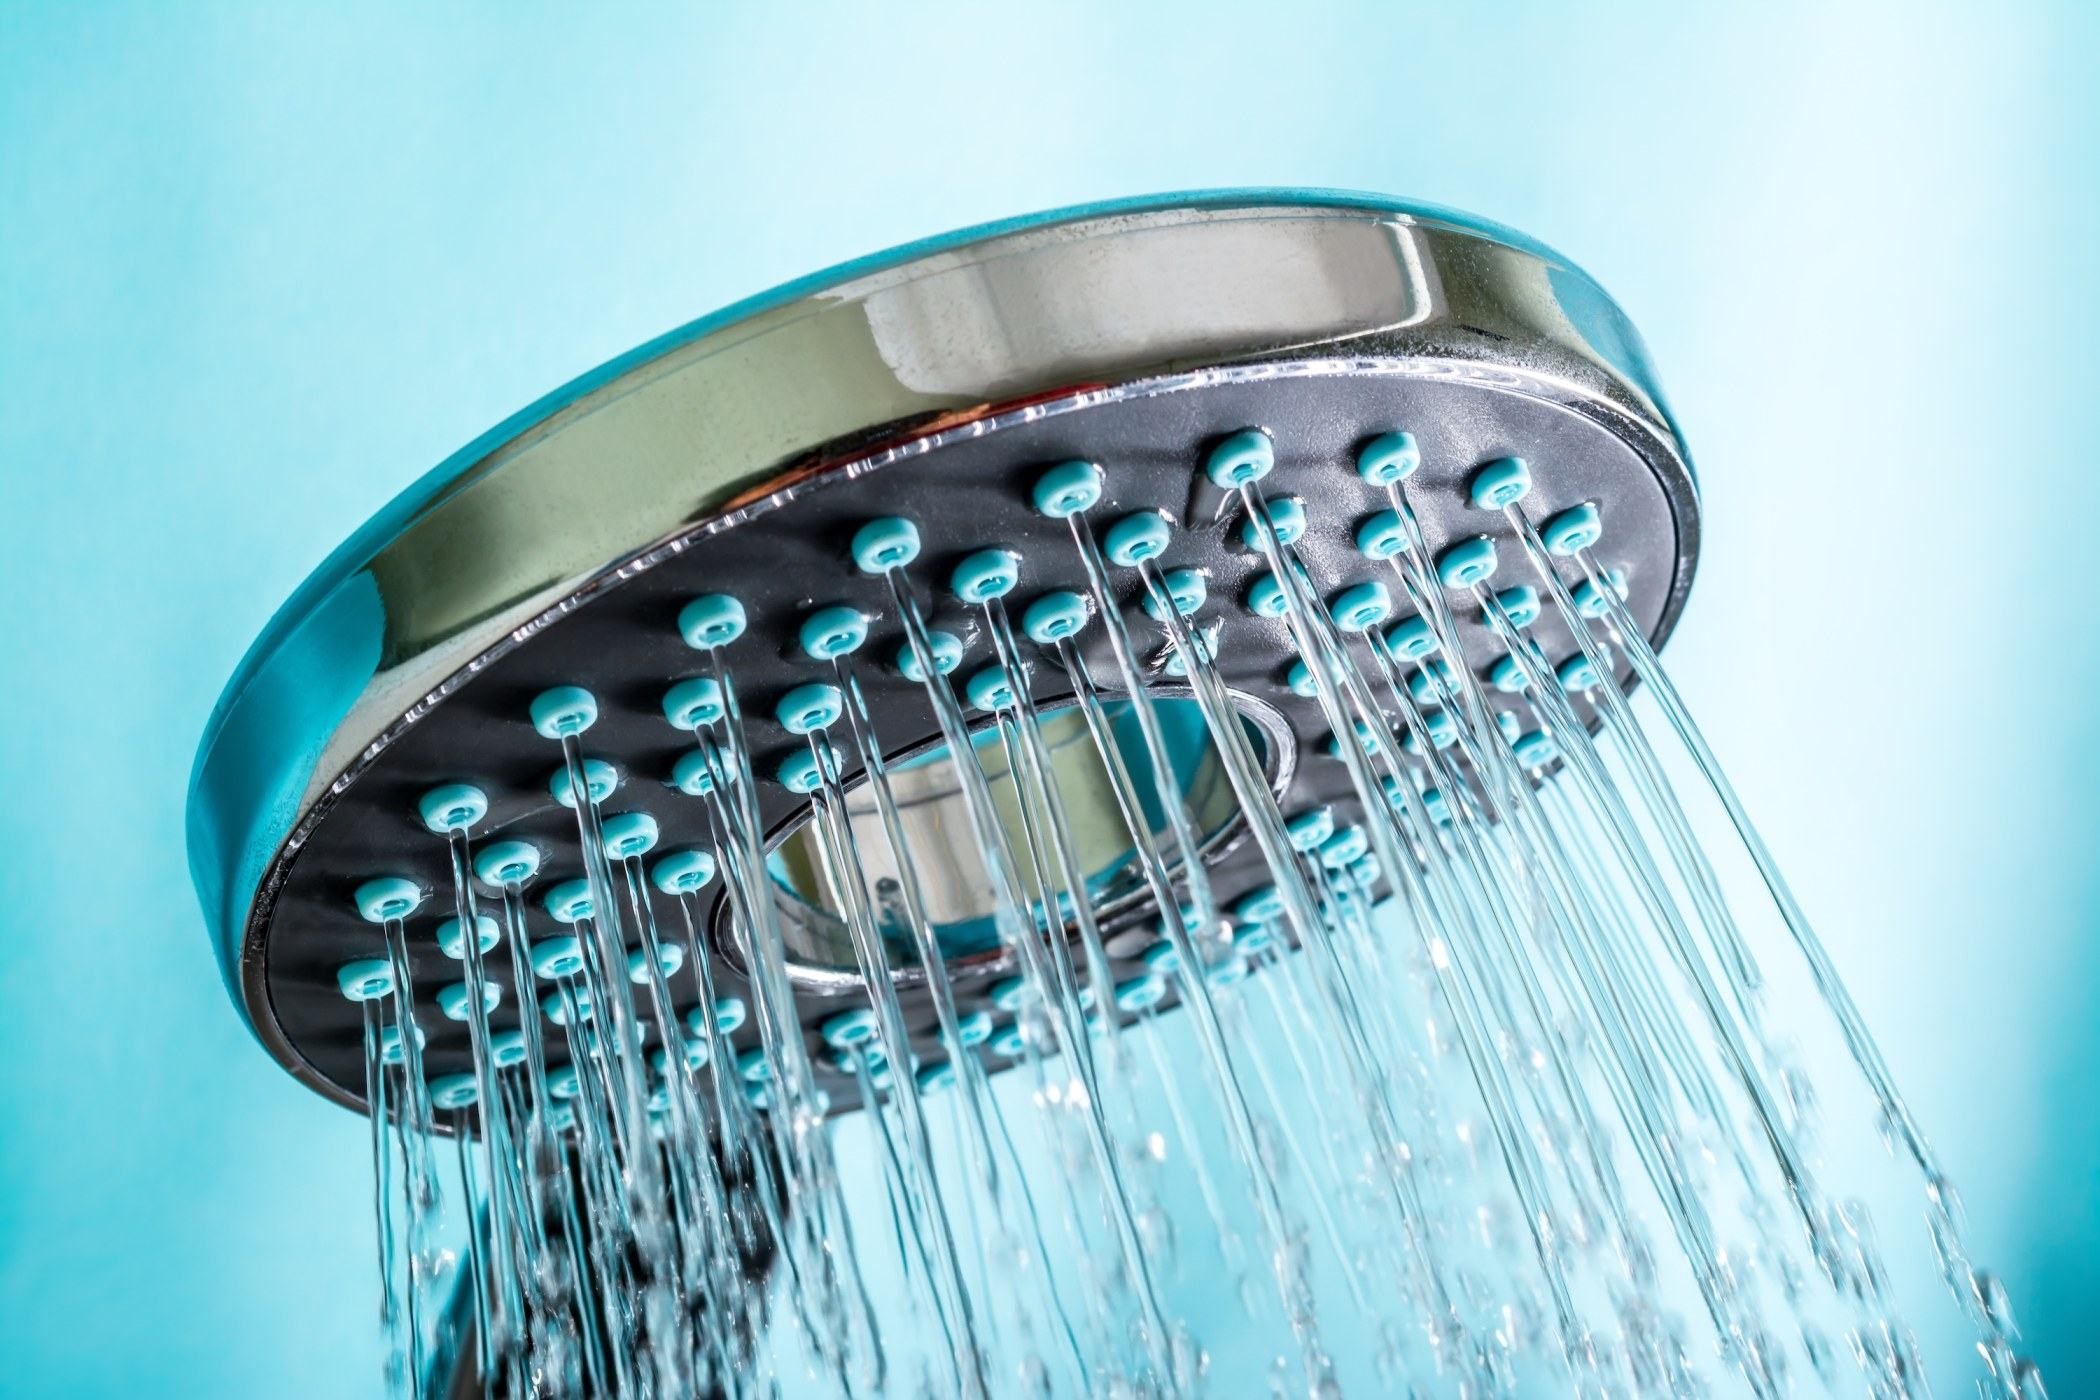 Dr. James Hamblin explores our obsession with showering and personal care products in a new book.